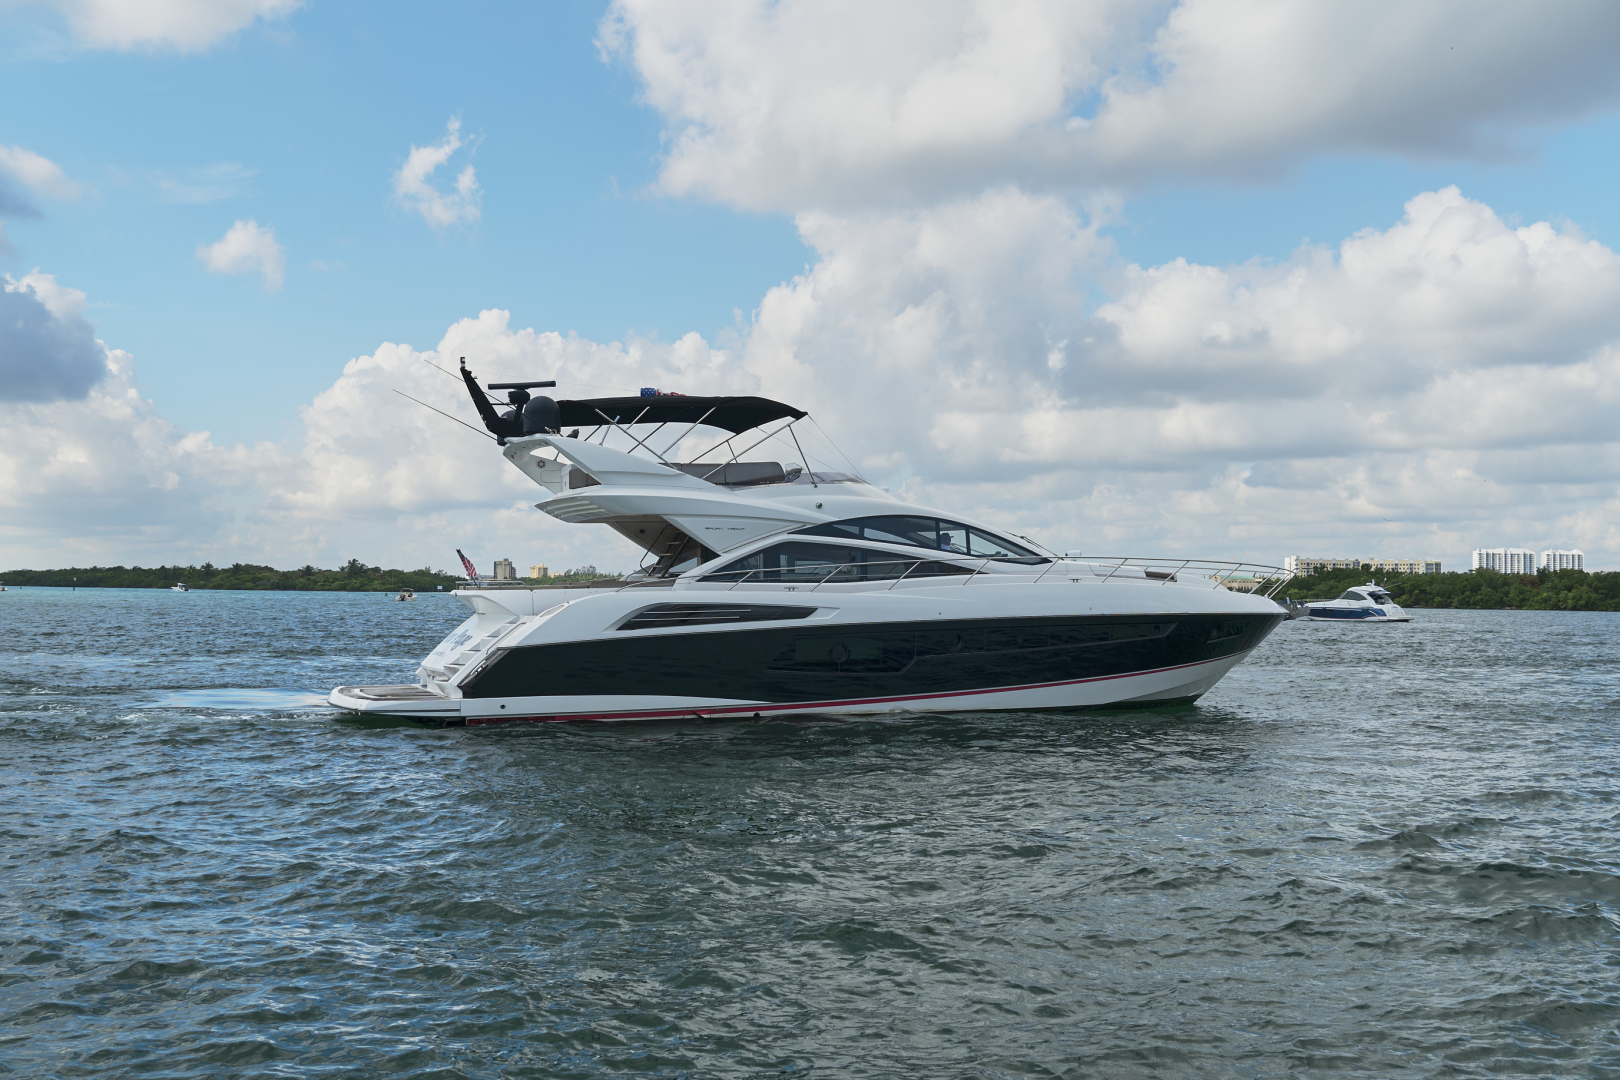 Sunseeker-68 Sport Yacht 2014-New Page Miami Beach-Florida-United States-1581164 | Thumbnail